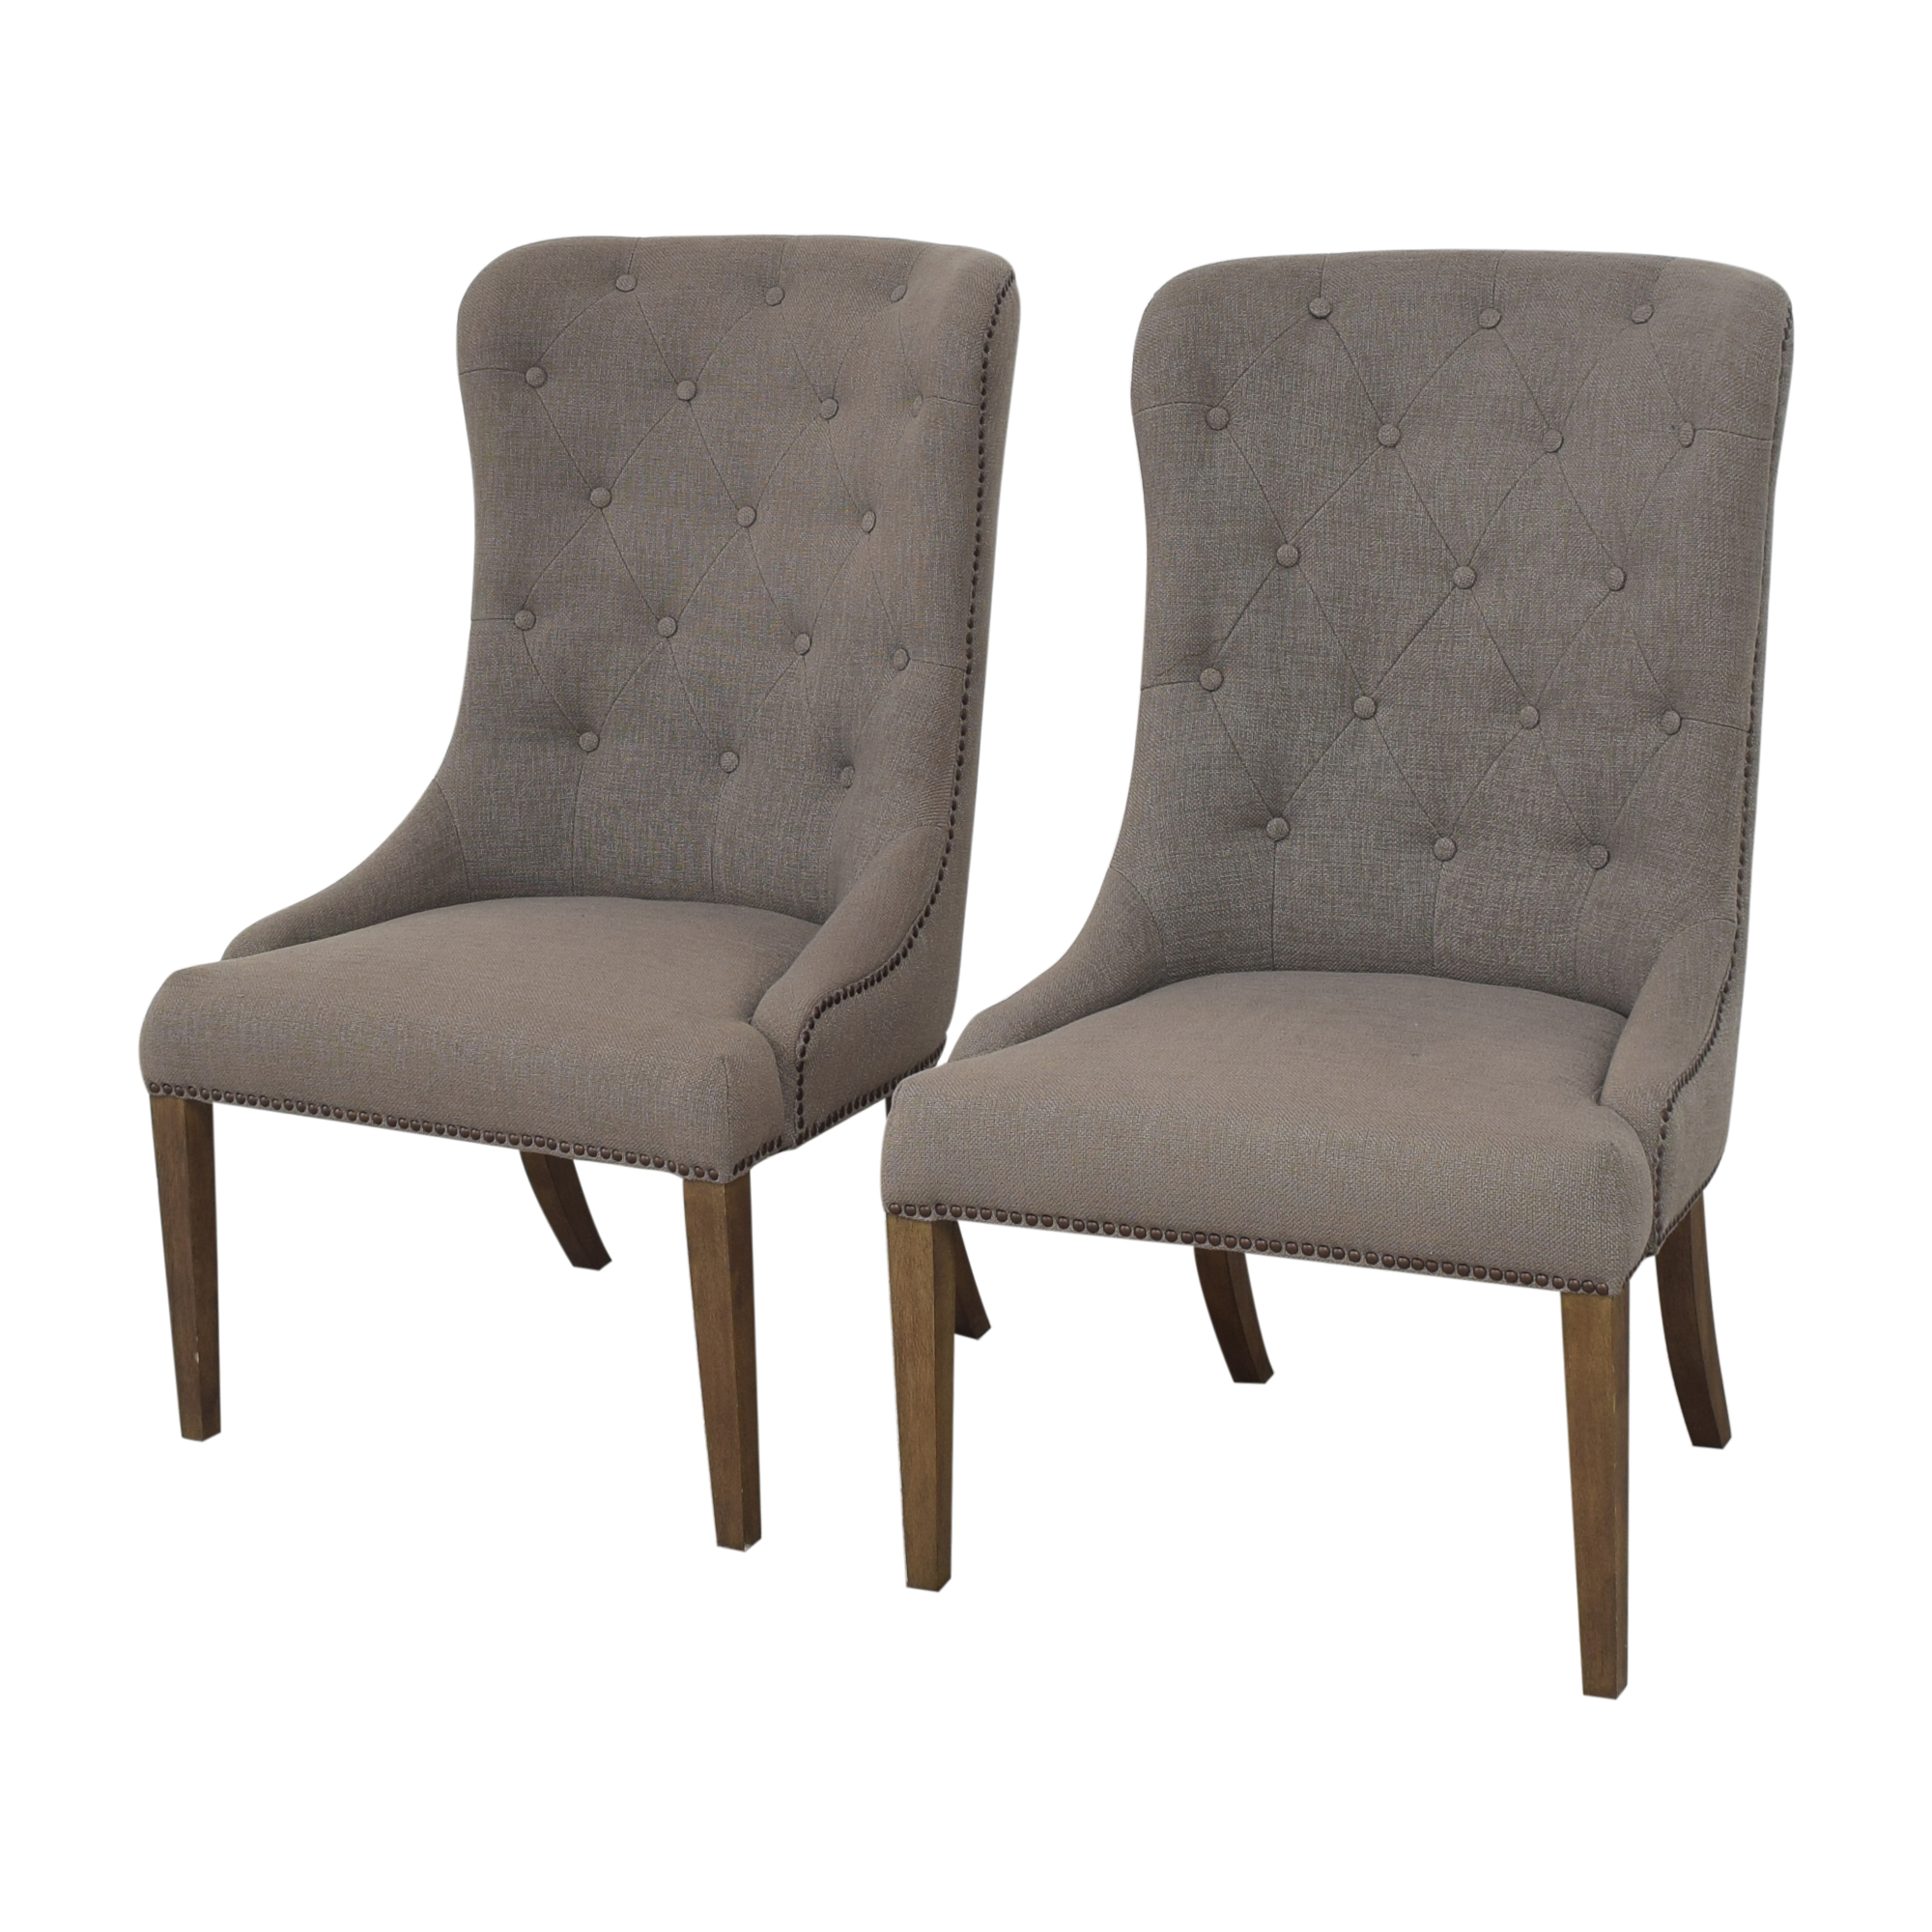 Four Hands Elouise Dining Chairs / Dining Chairs